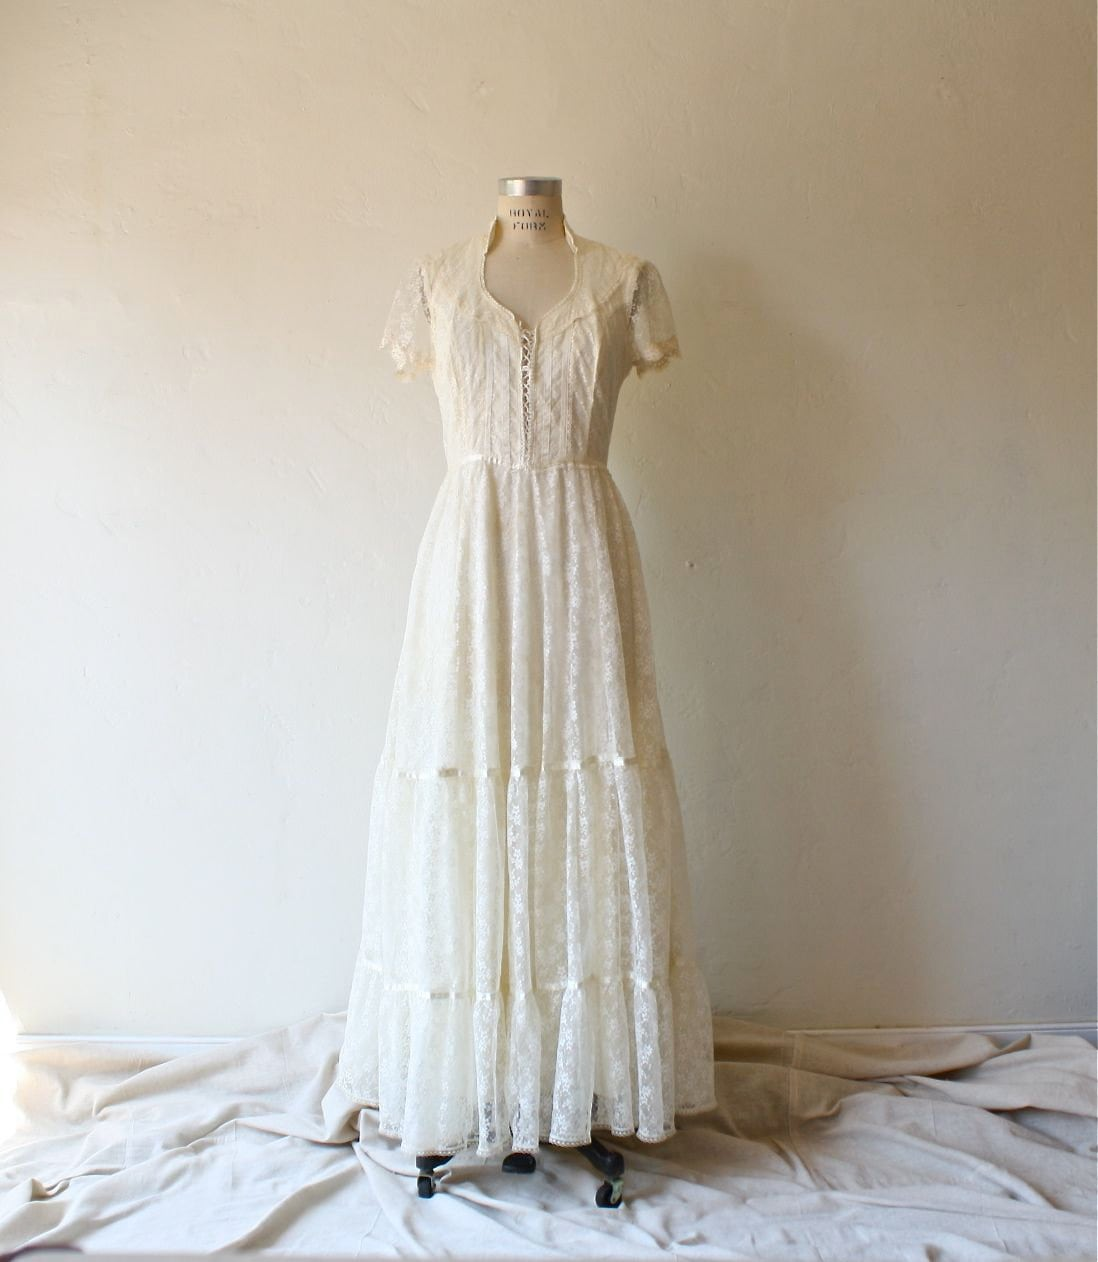 Reserved 70s gunne sax lace wedding dress by bohemiennes for Gunne sax wedding dresses